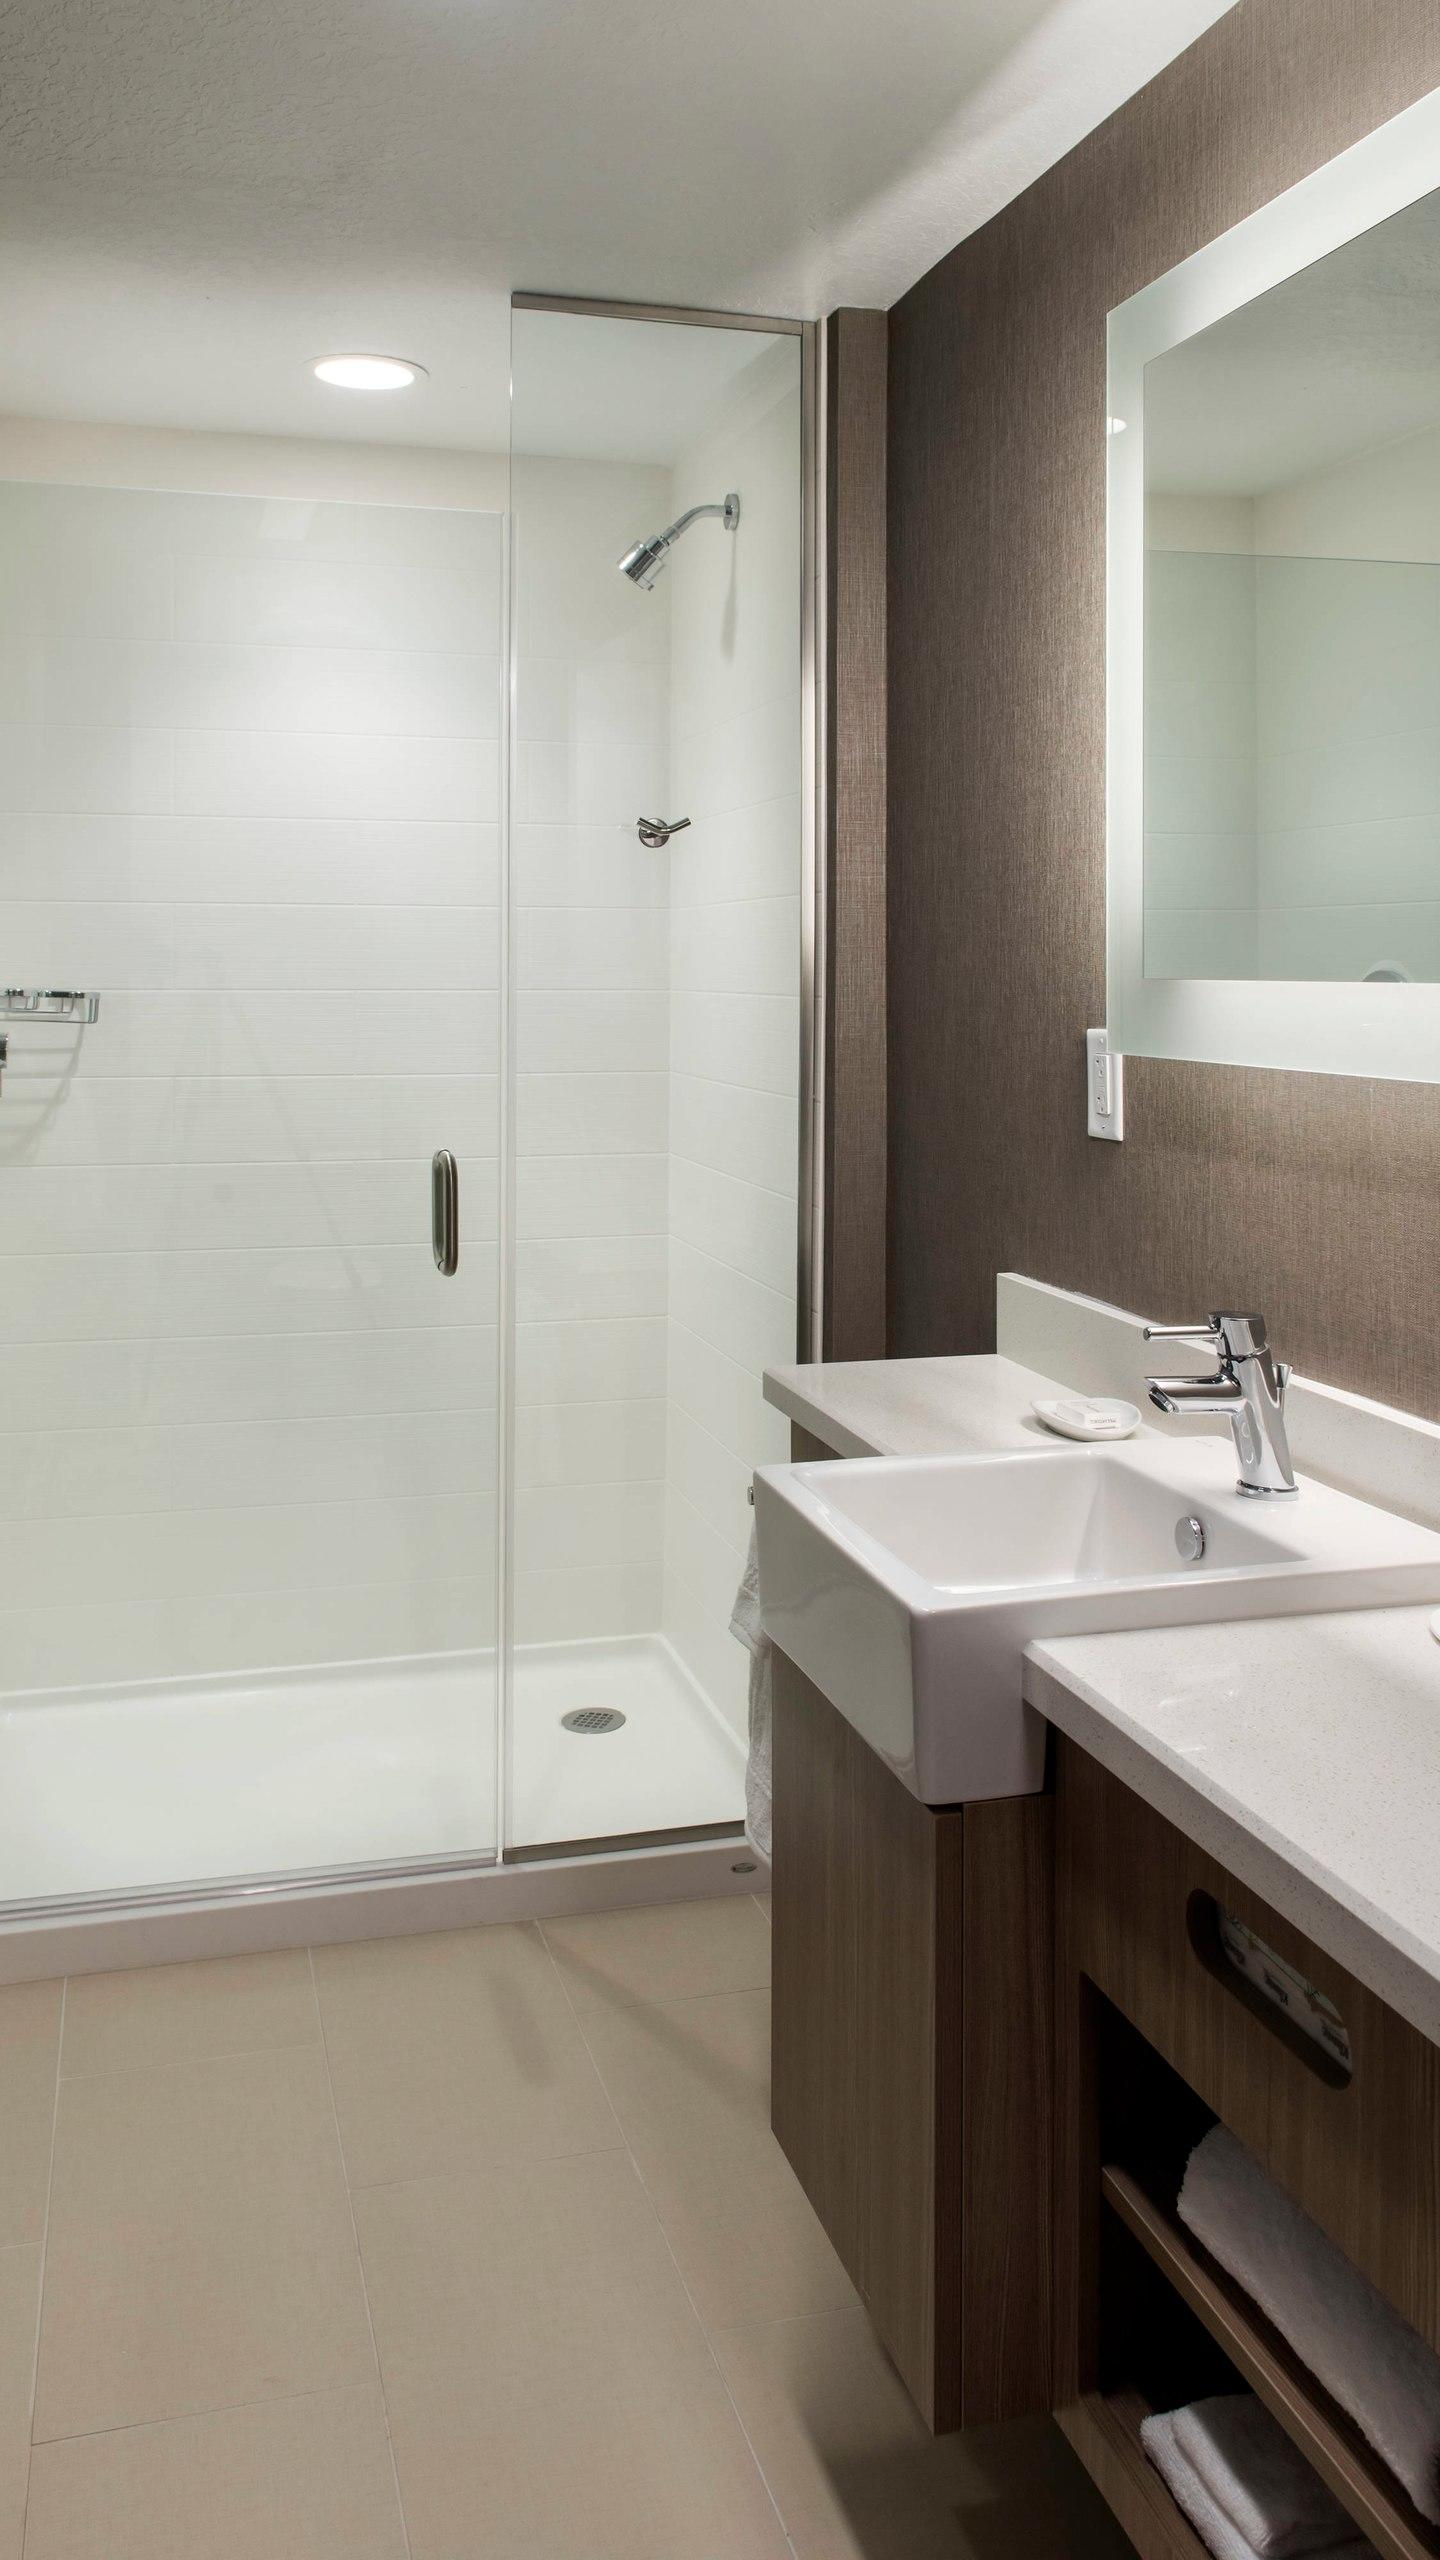 SpringHill Suites by Marriott Tampa Suncoast Parkway image 9